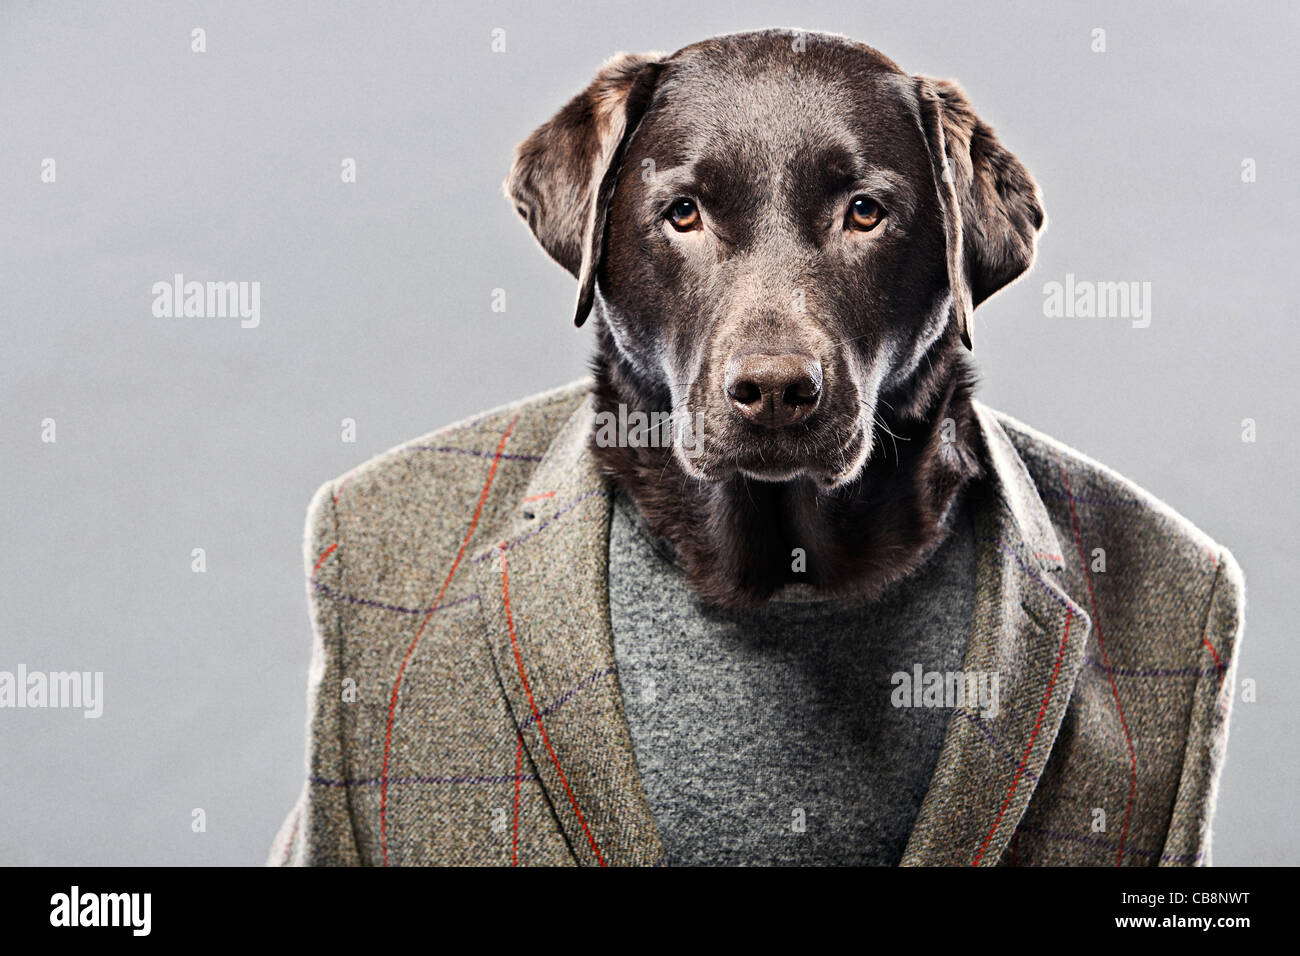 Chocolate Labrador in Hunting Jacket Stock Photo, Royalty ...